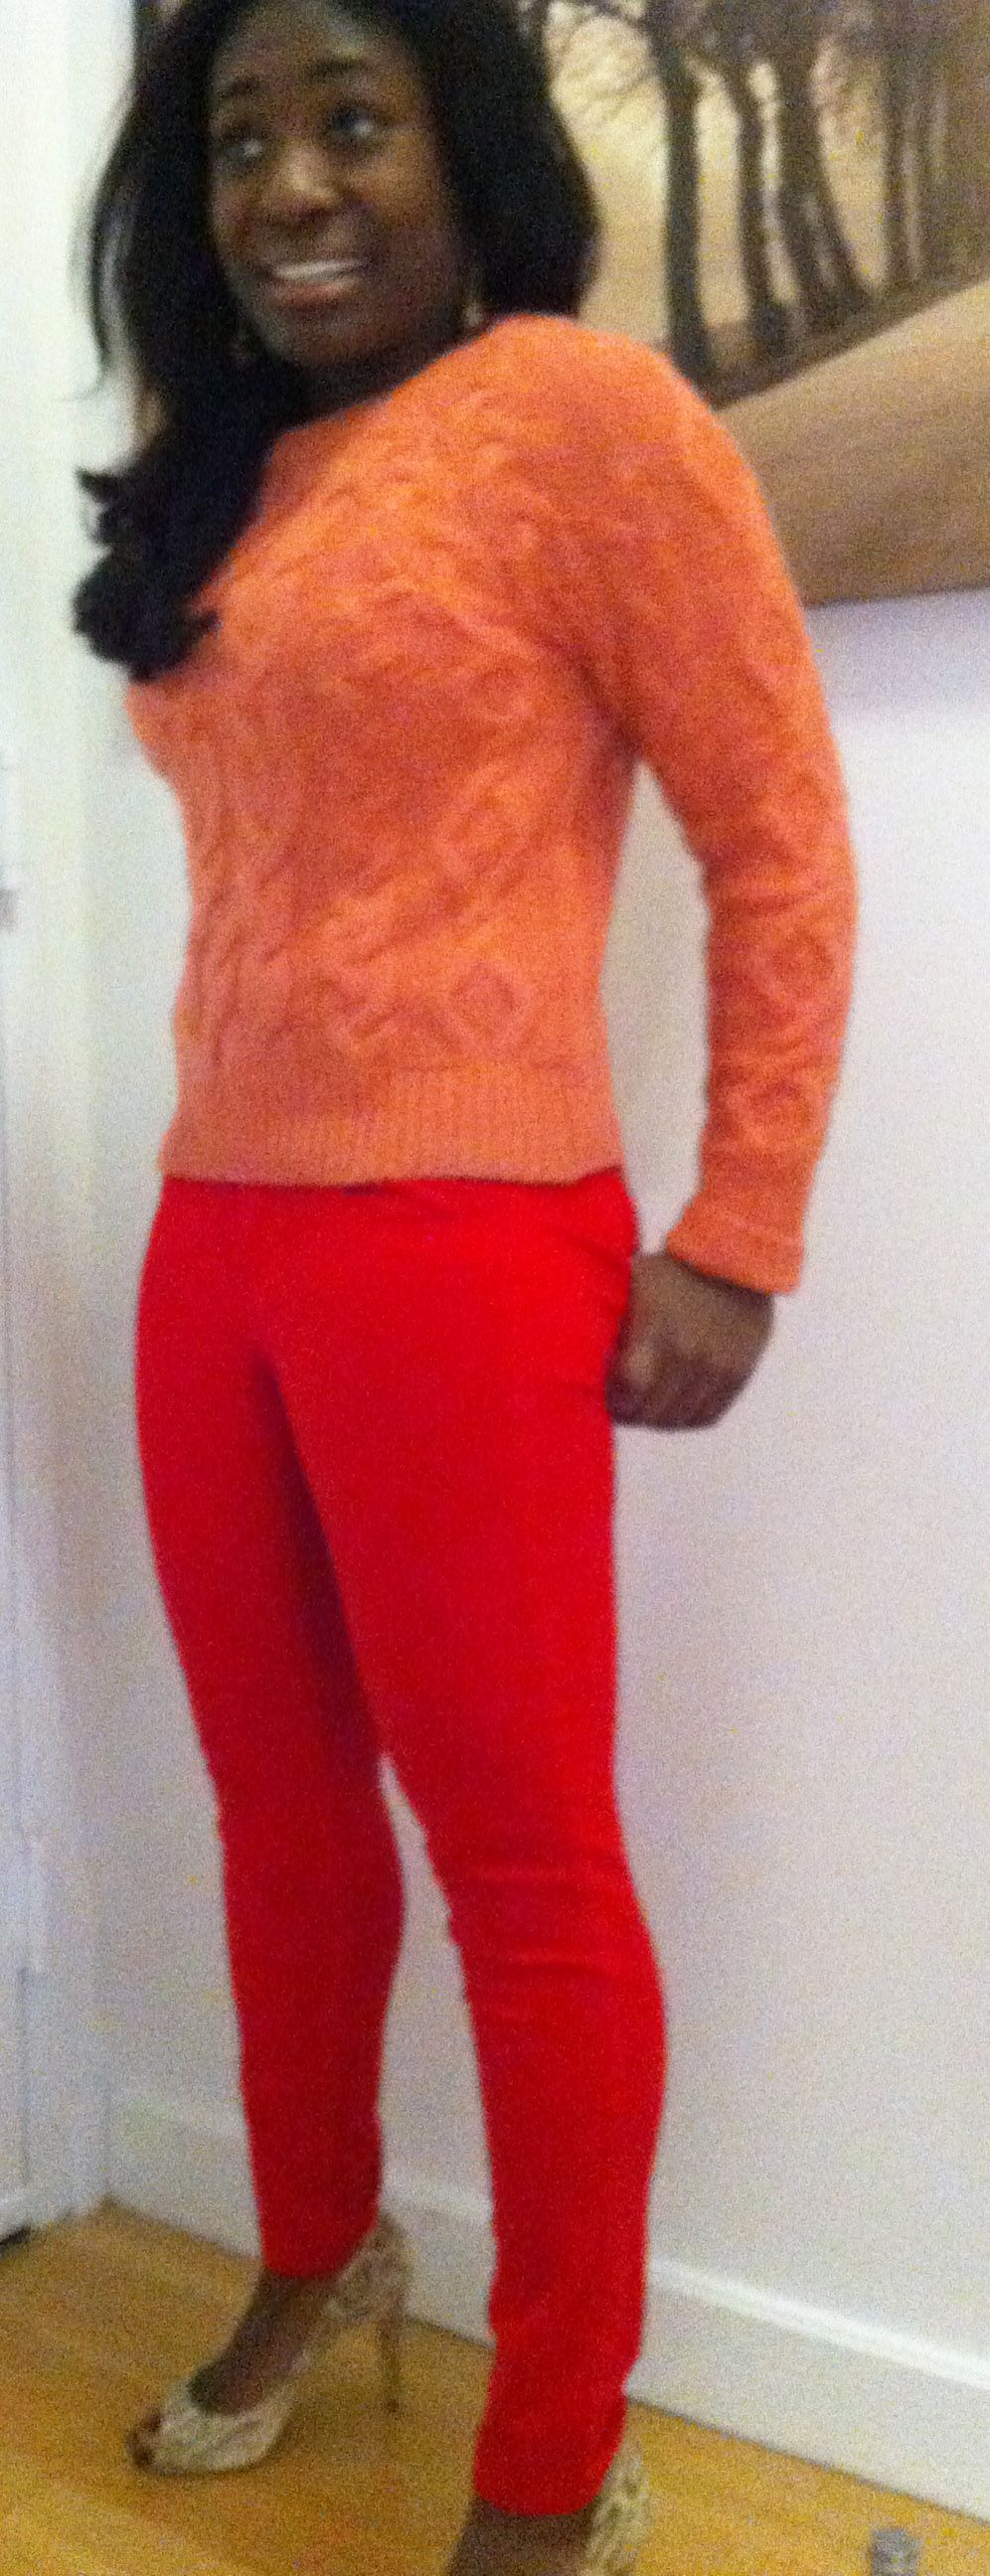 Bright sweaters r perfect 4 spring days & nights that r still a bit chilly #styletip